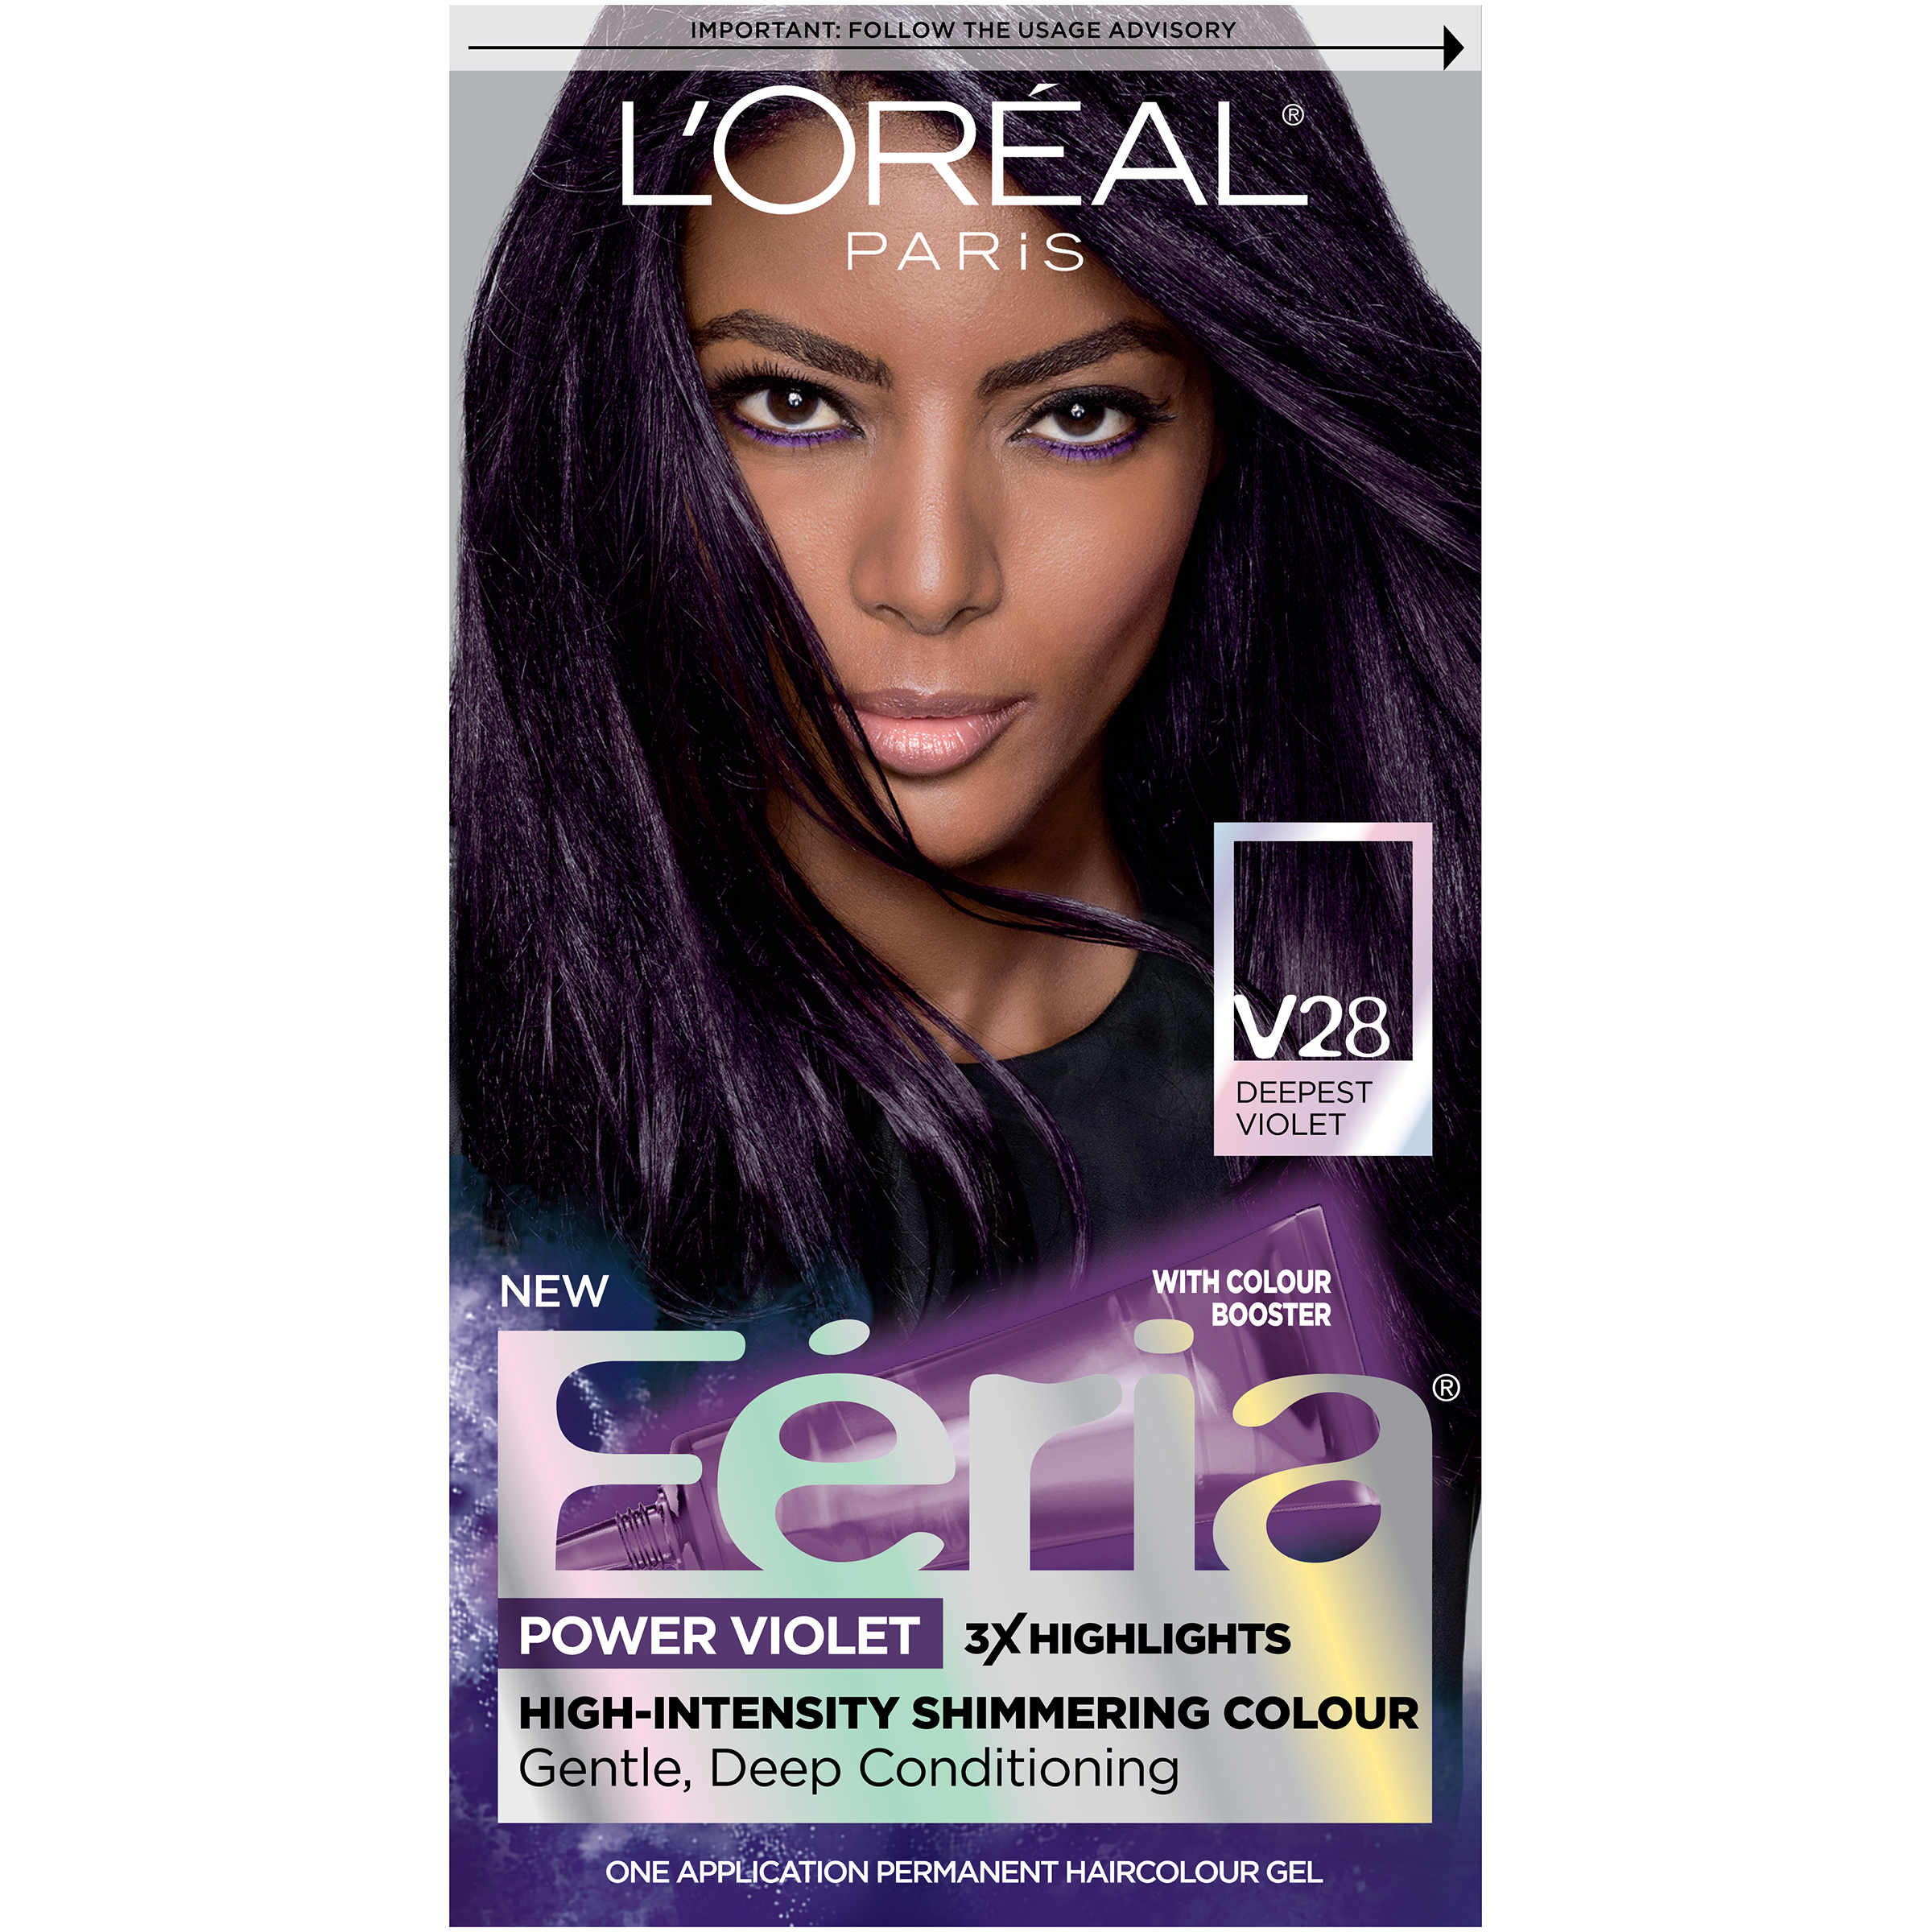 Loral Paris Feria Permanent Hair Color V28 Midnight Violet